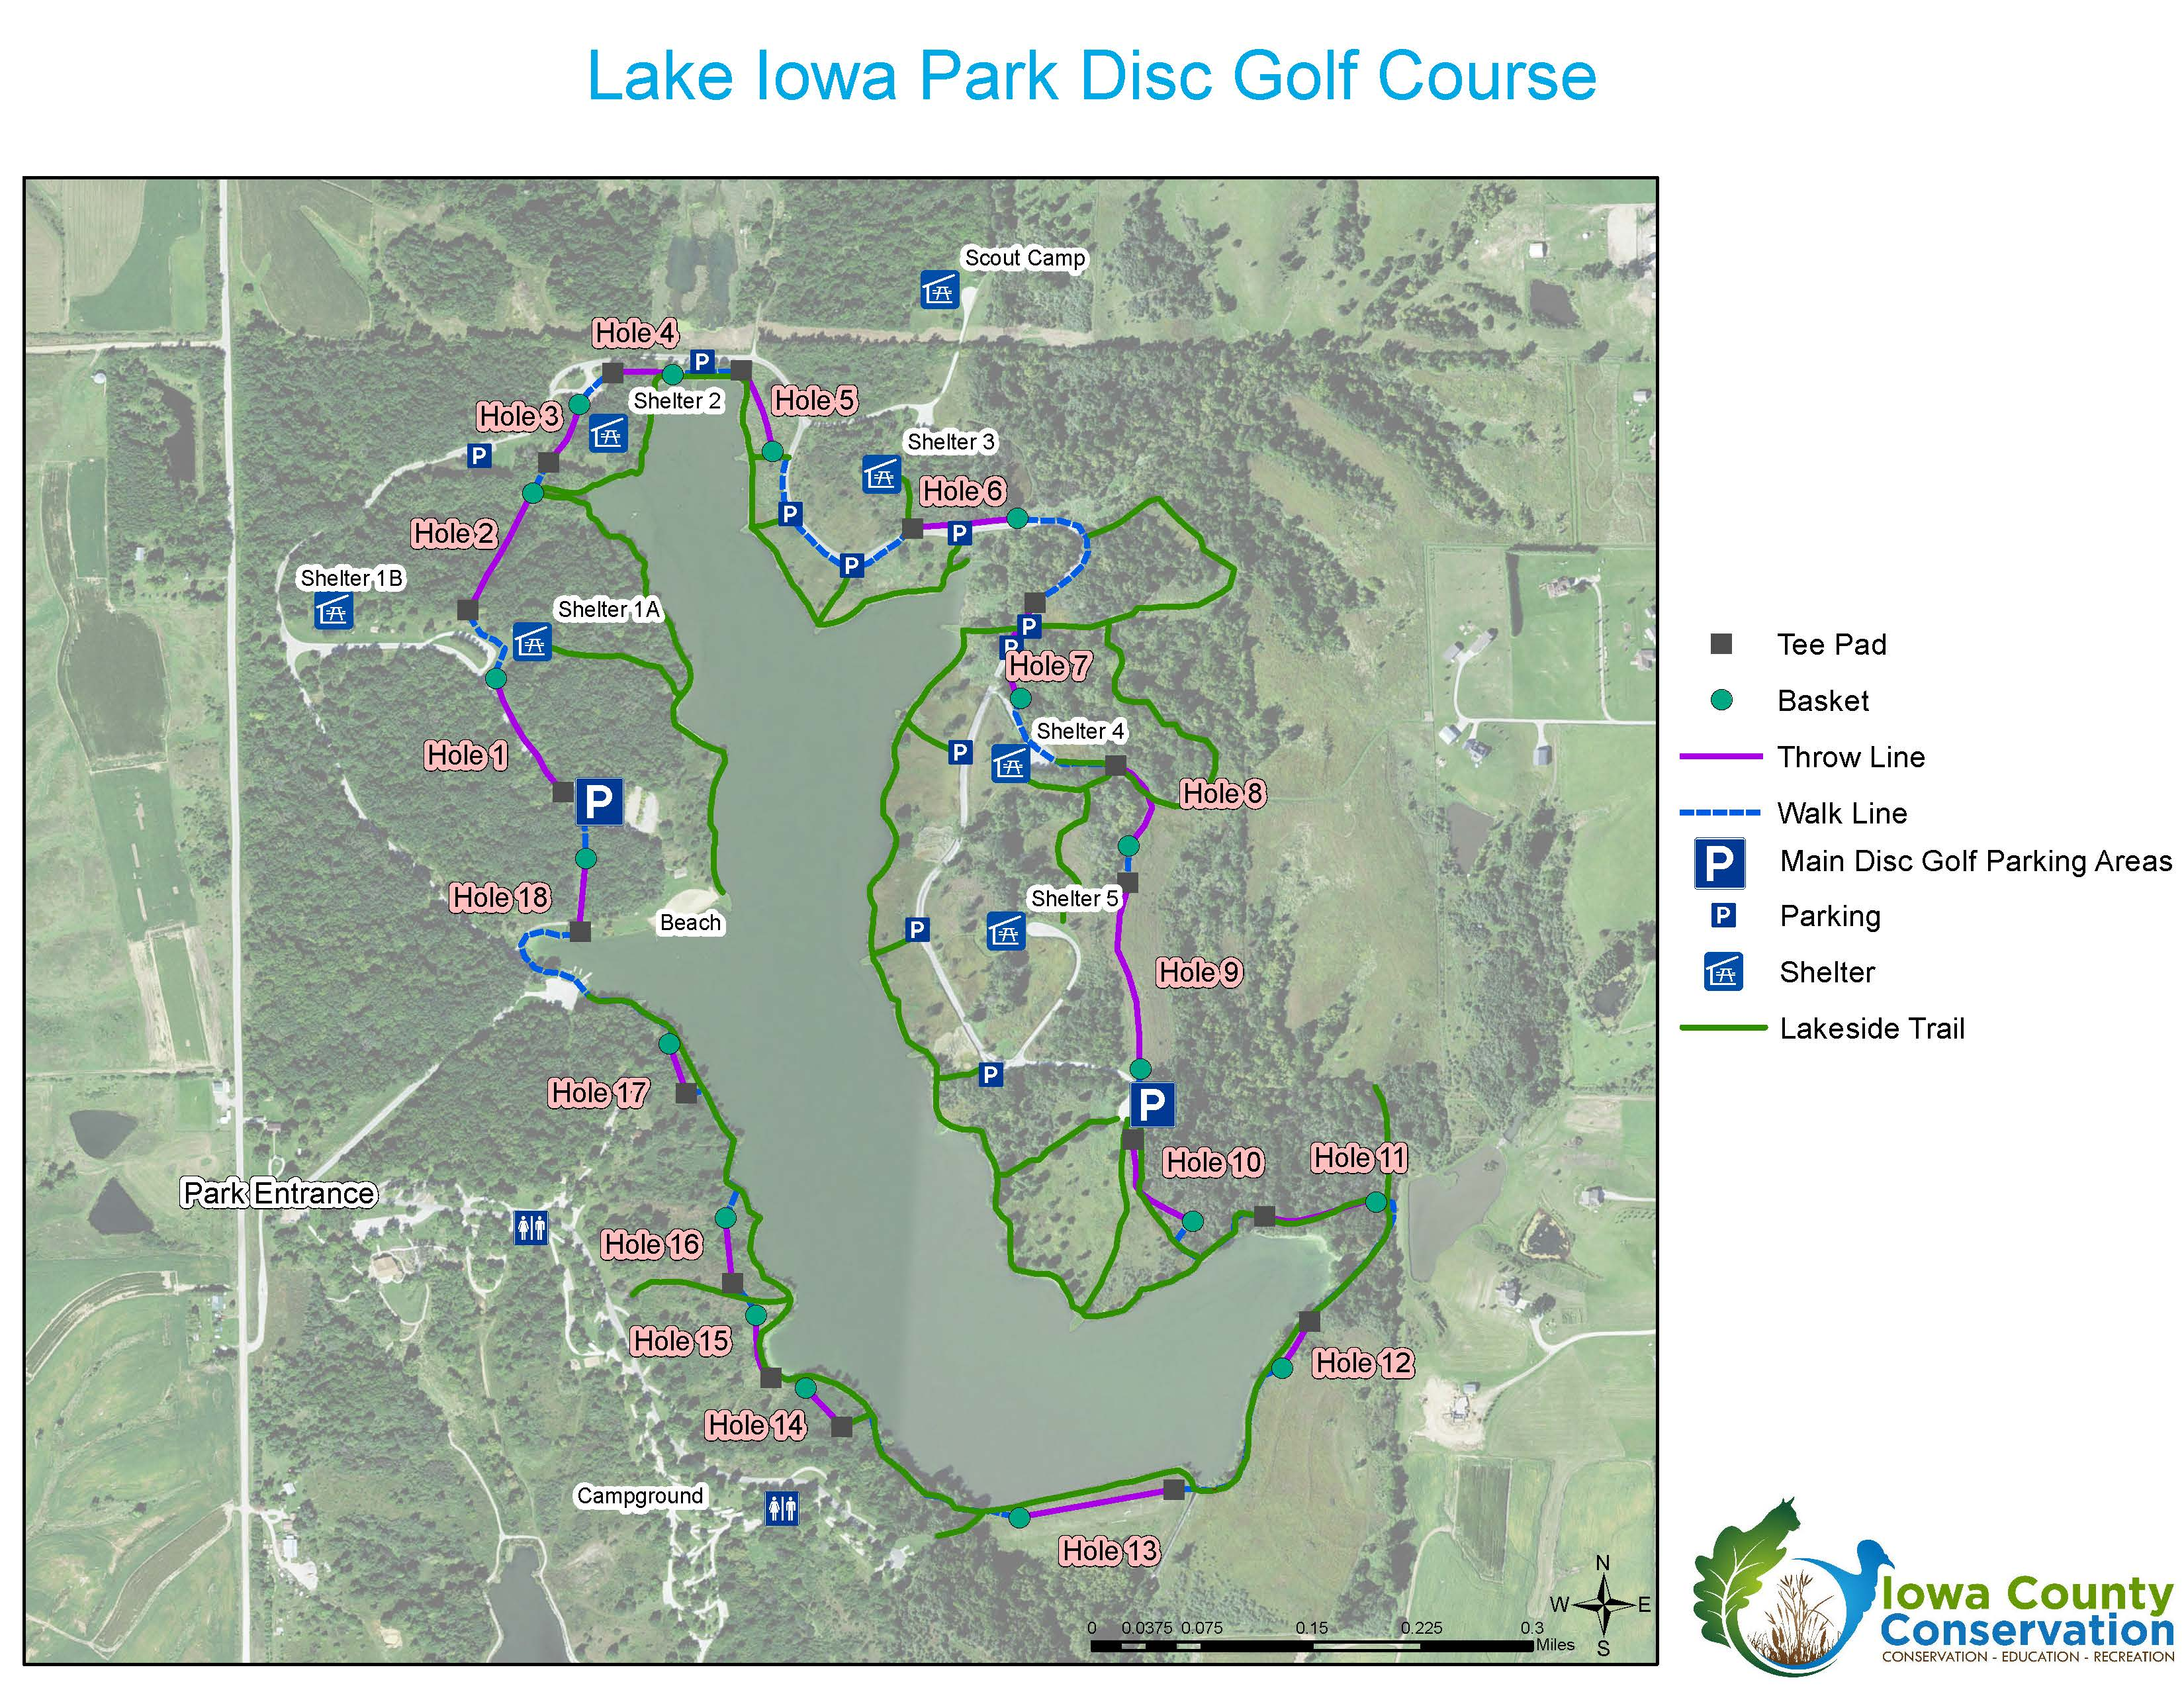 Disc Golf Course at Lake Iowa Park Iowa County Conservation